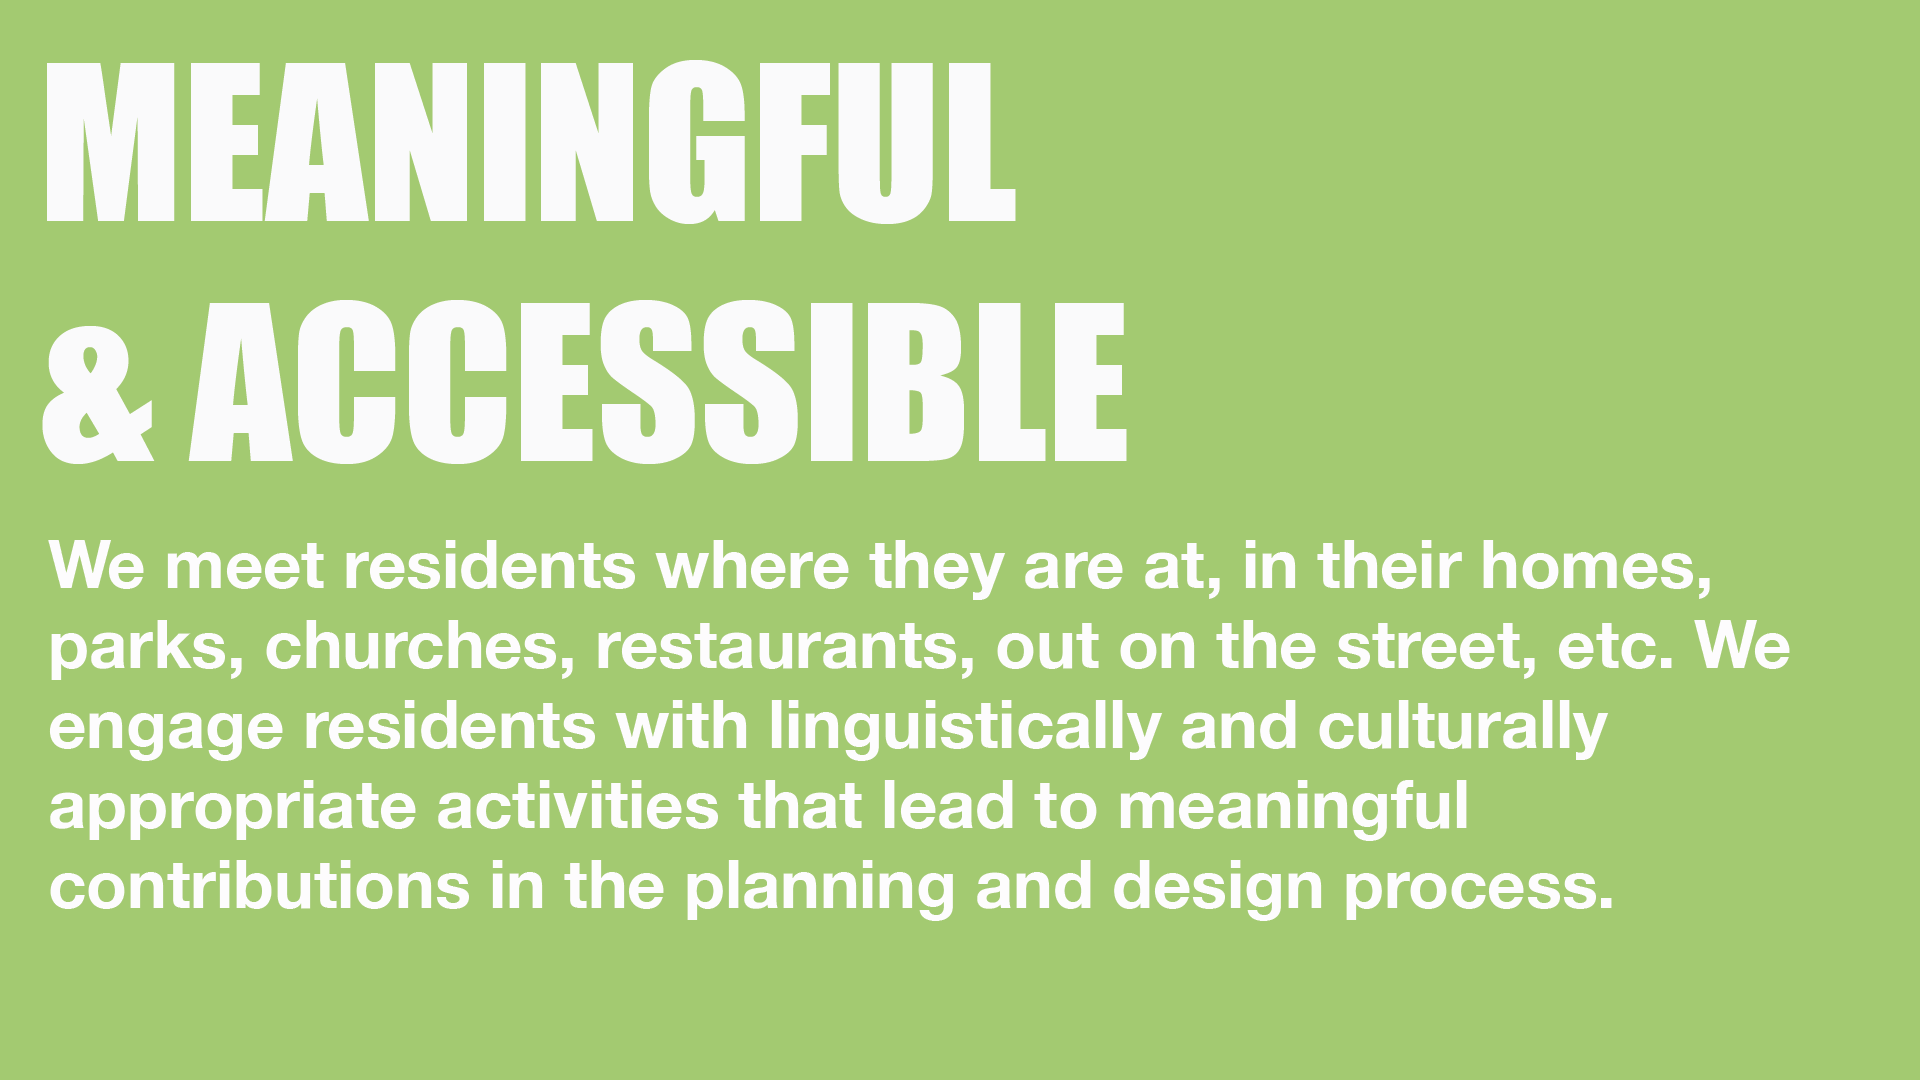 MEANINGFUL_ACCESSIBLE-01.png